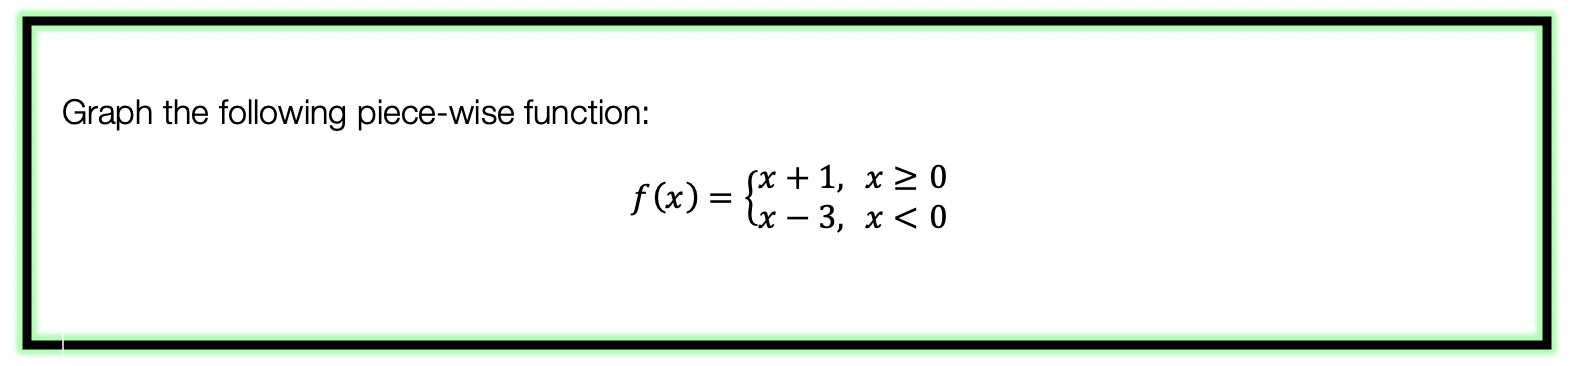 piecewise functions example